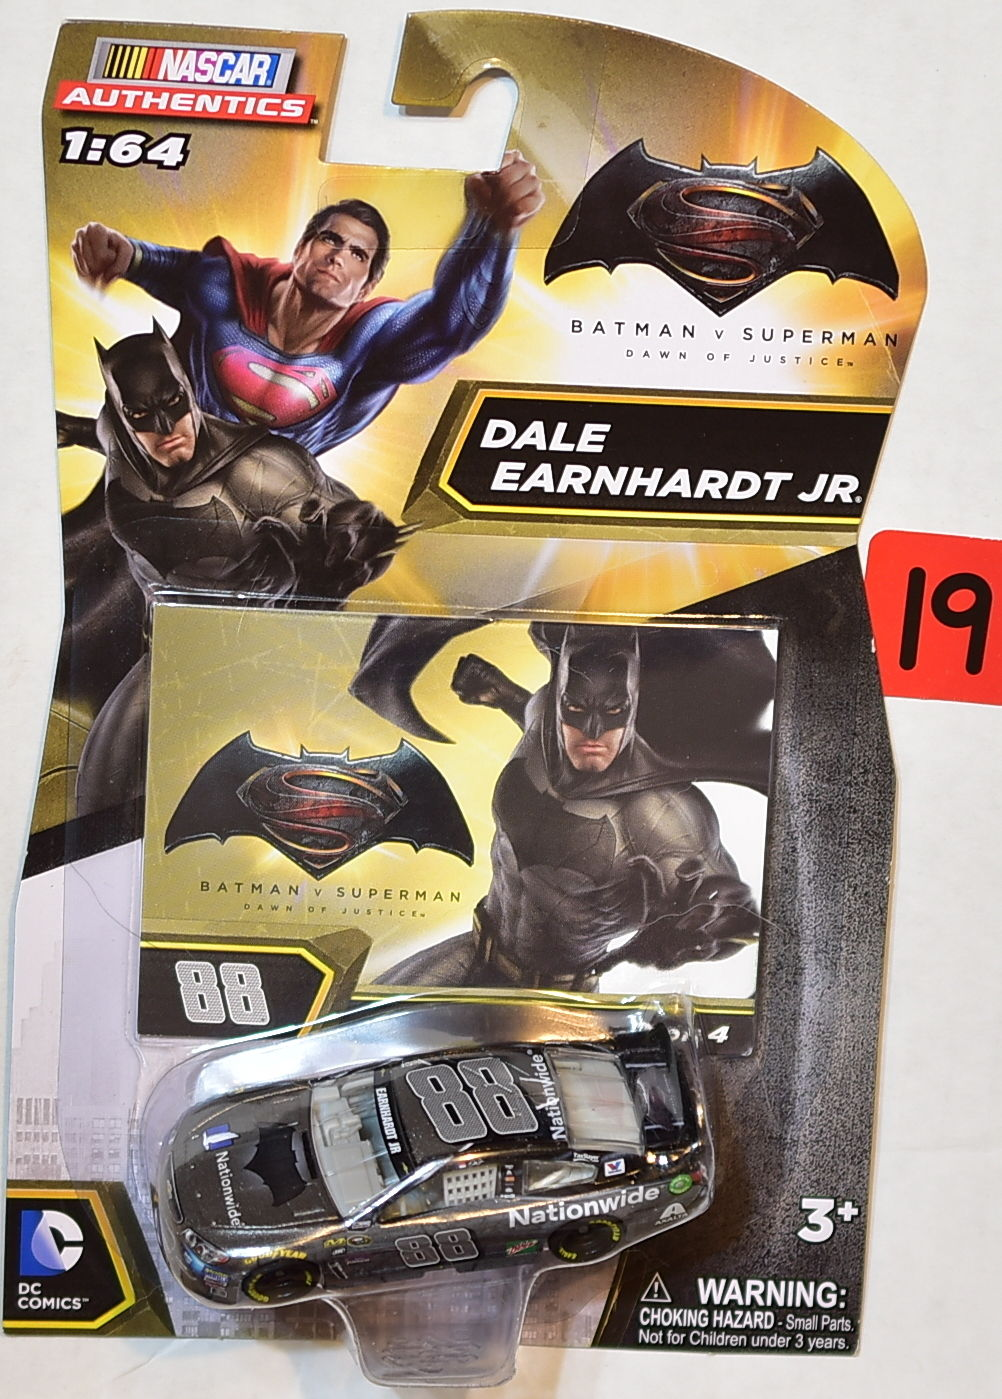 NASCAR AUTHENTICS 1:64 DC COMICS BATMAN V SUPERMAN DALE EARBHARDT JR